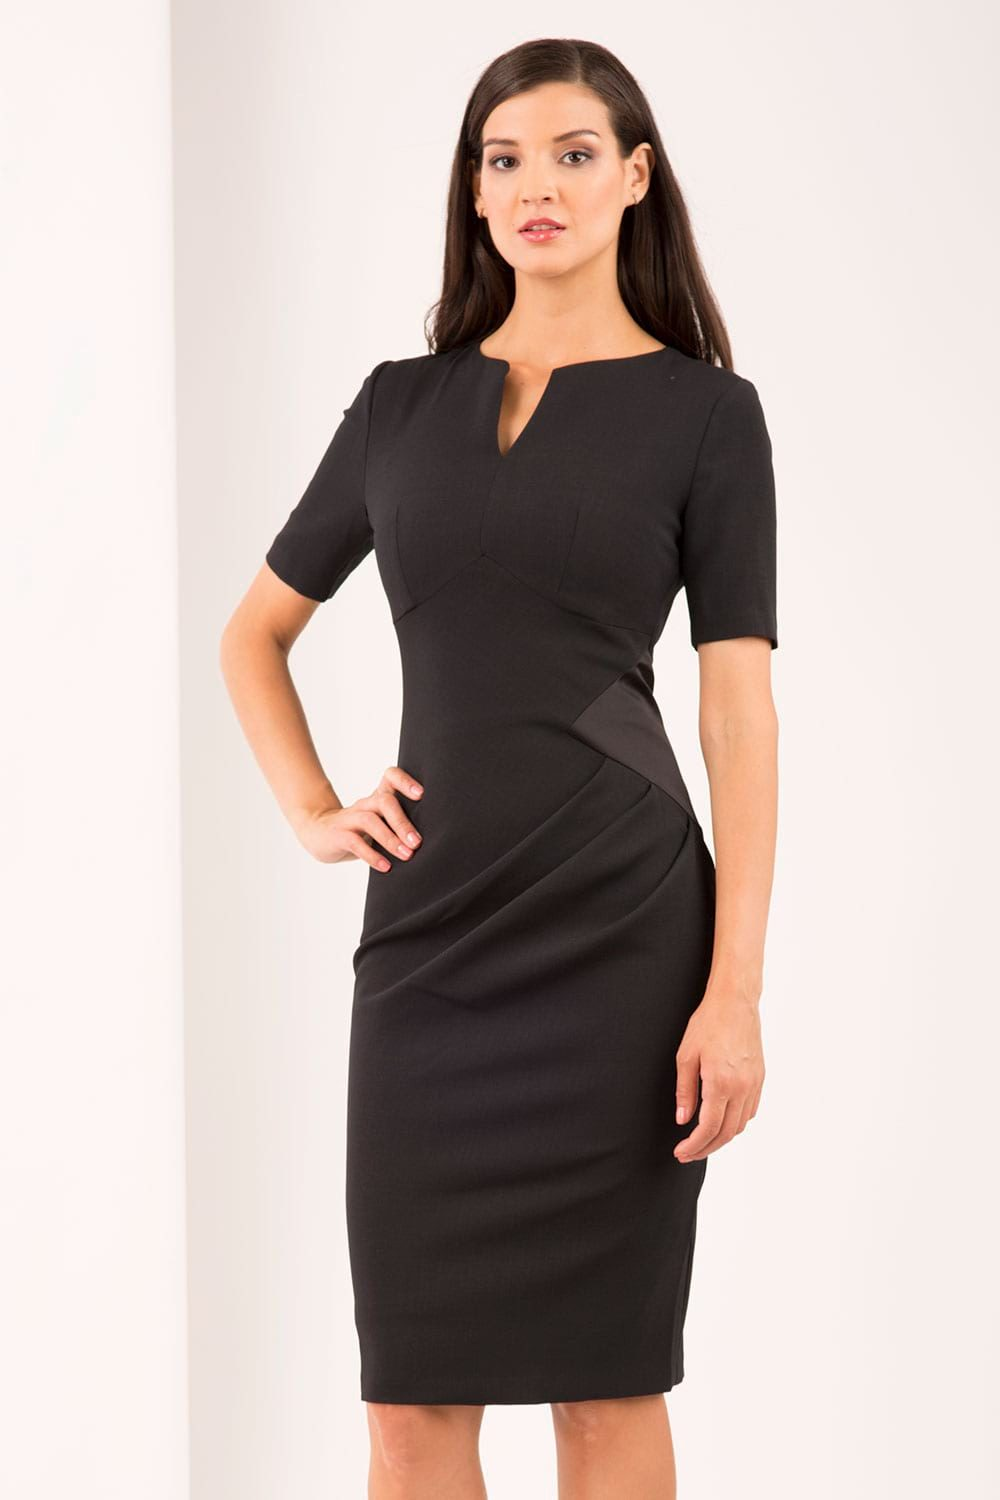 Hybrid Fashion 1293 Halle Ruched Pencil Dress